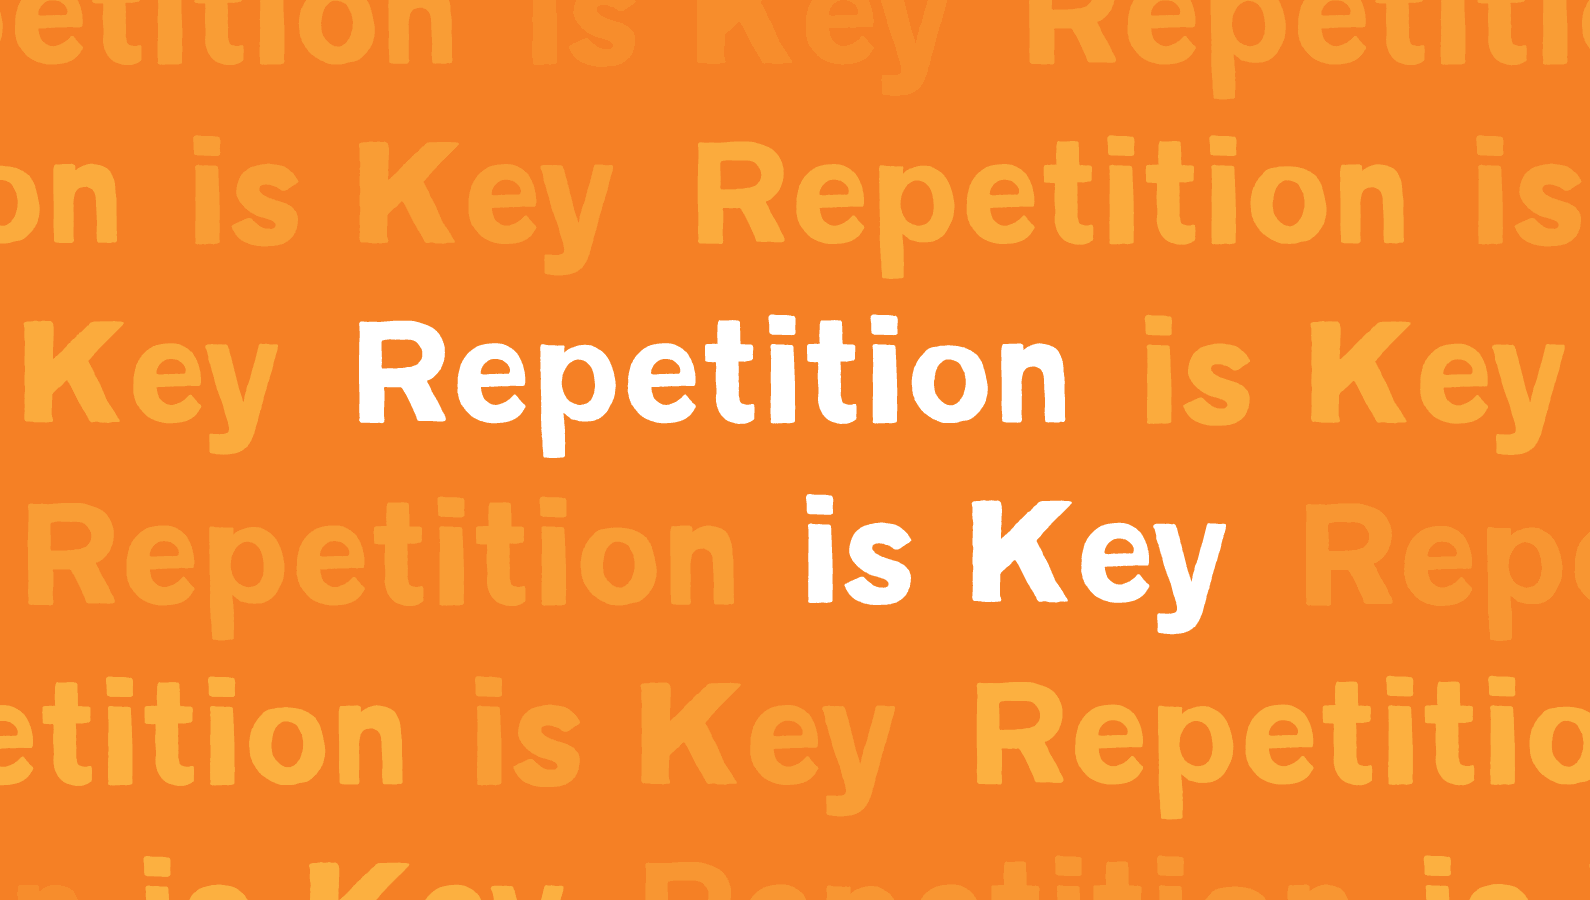 Repetition is key, repetition is key in learning a language.